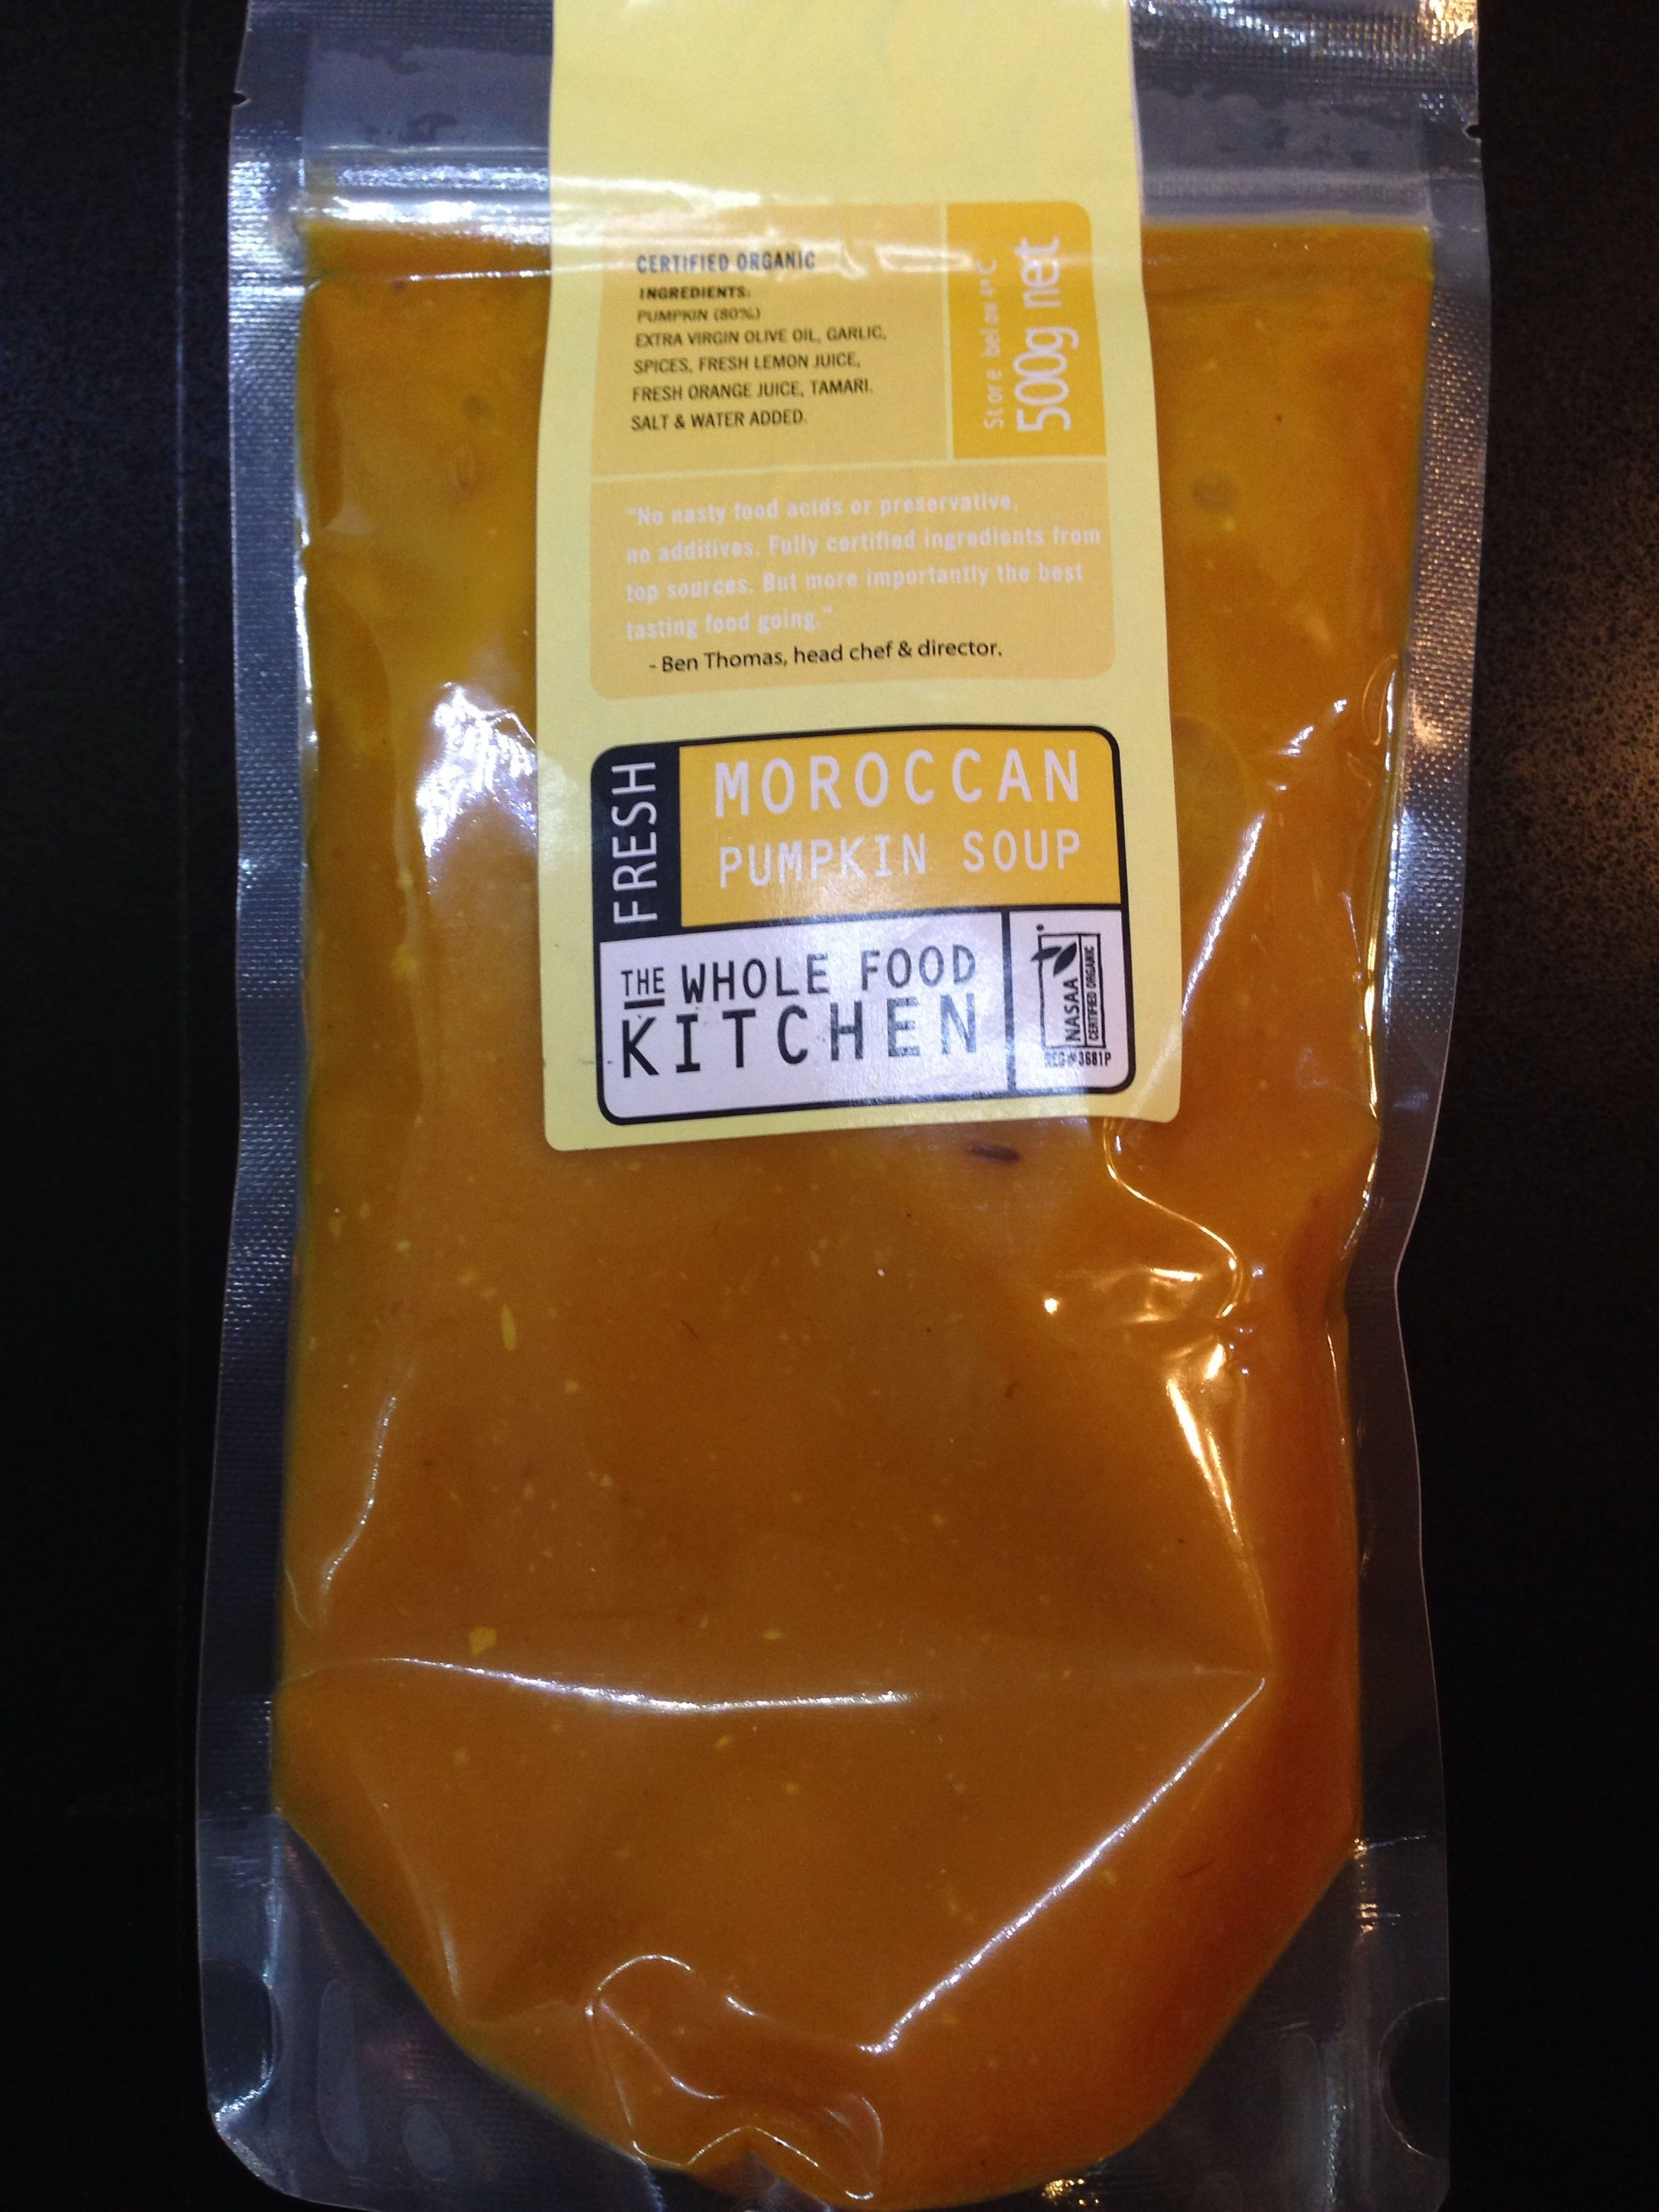 Moroccan Pumpkin Soup - Product - en